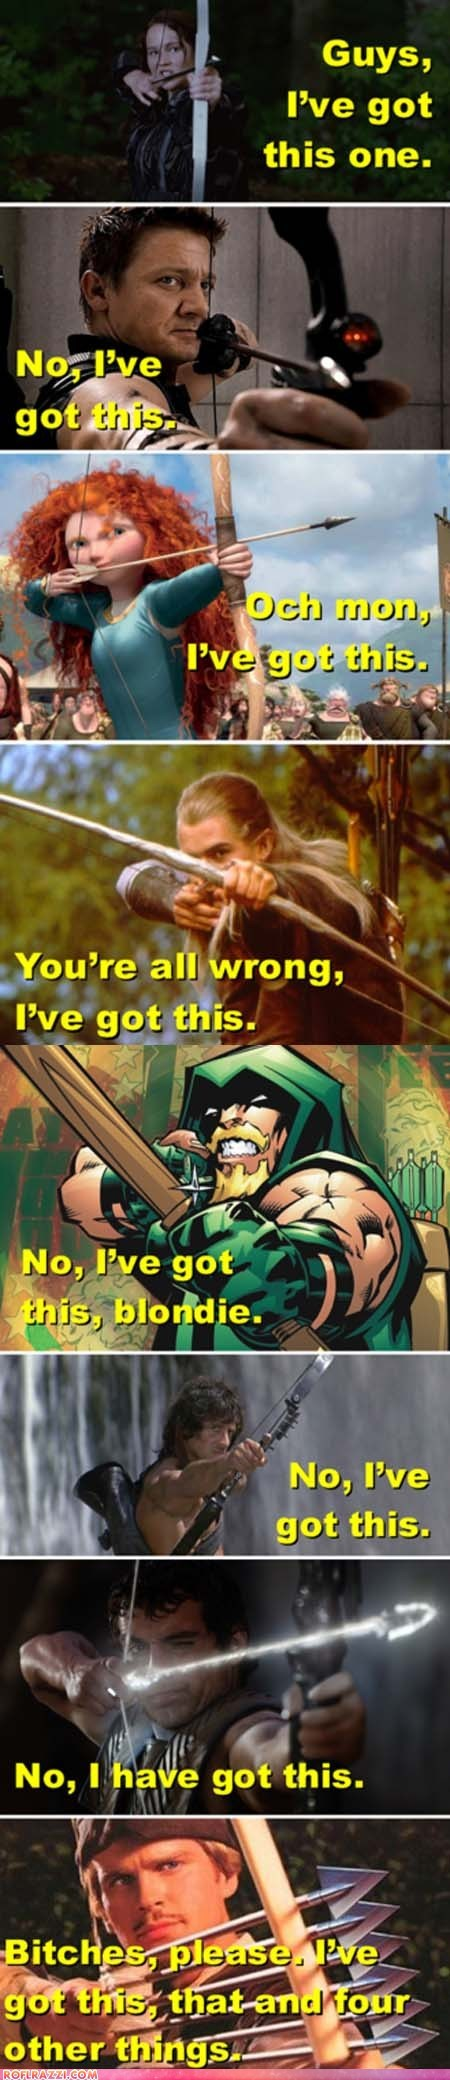 best of the week brave comic funny green arrow Lord of the Rings Movie rambo robin-hood-men-in-tights The Avengers hunger games